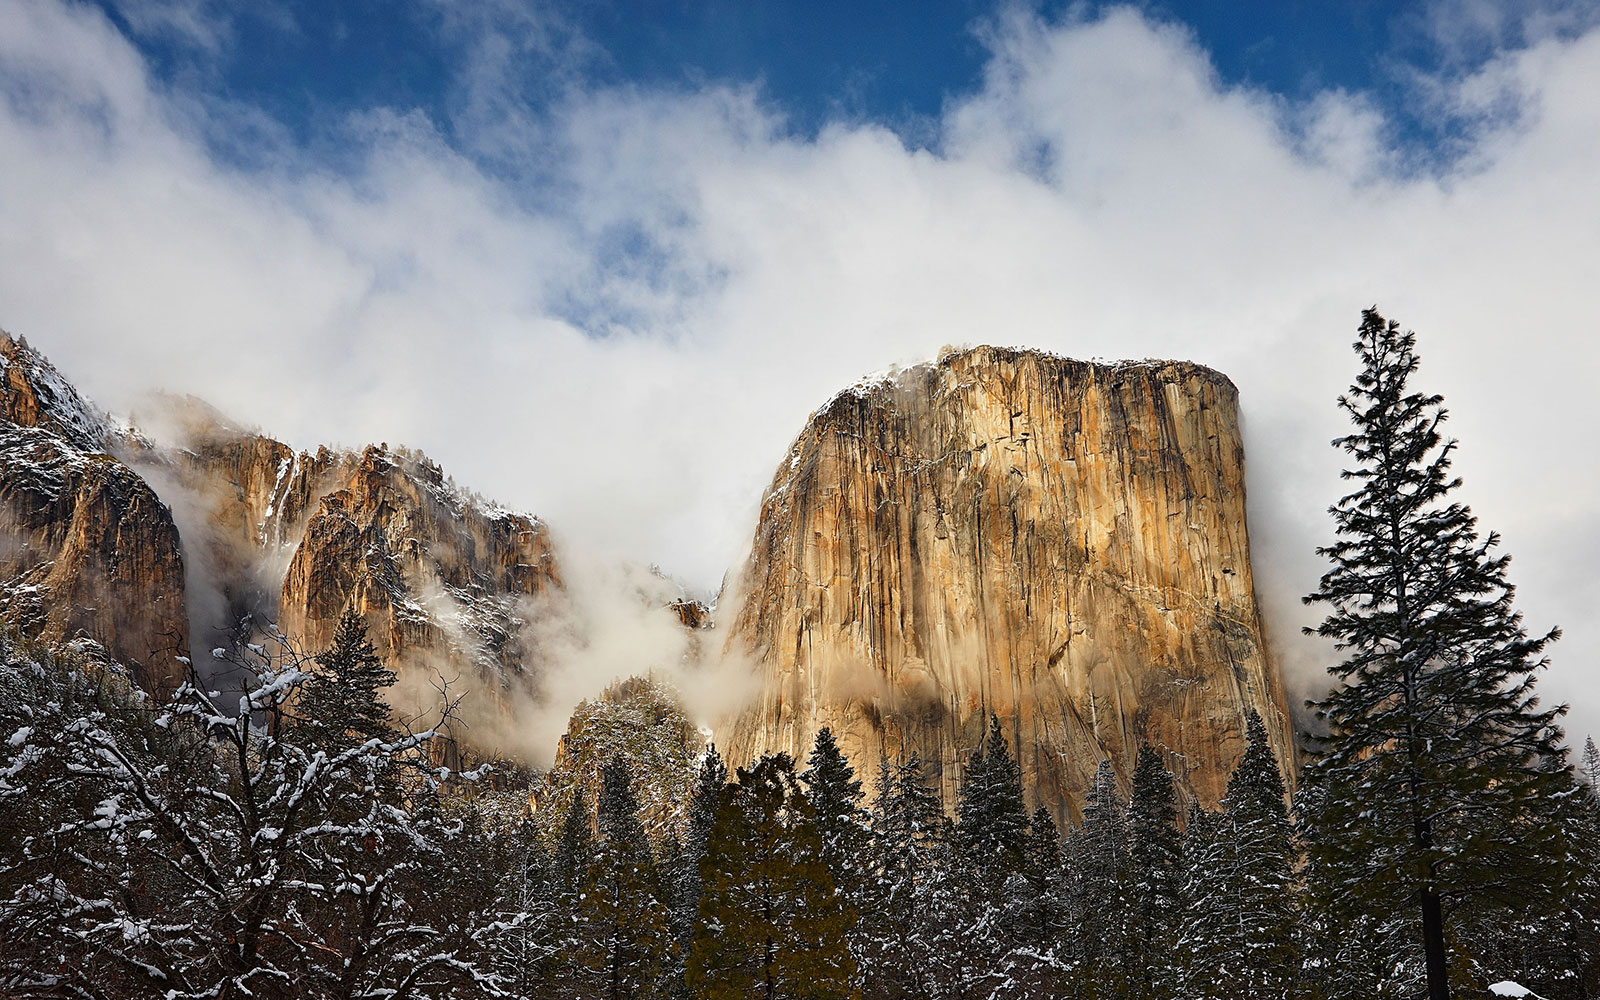 Climb Yosemite's El Capitan on Google Street View